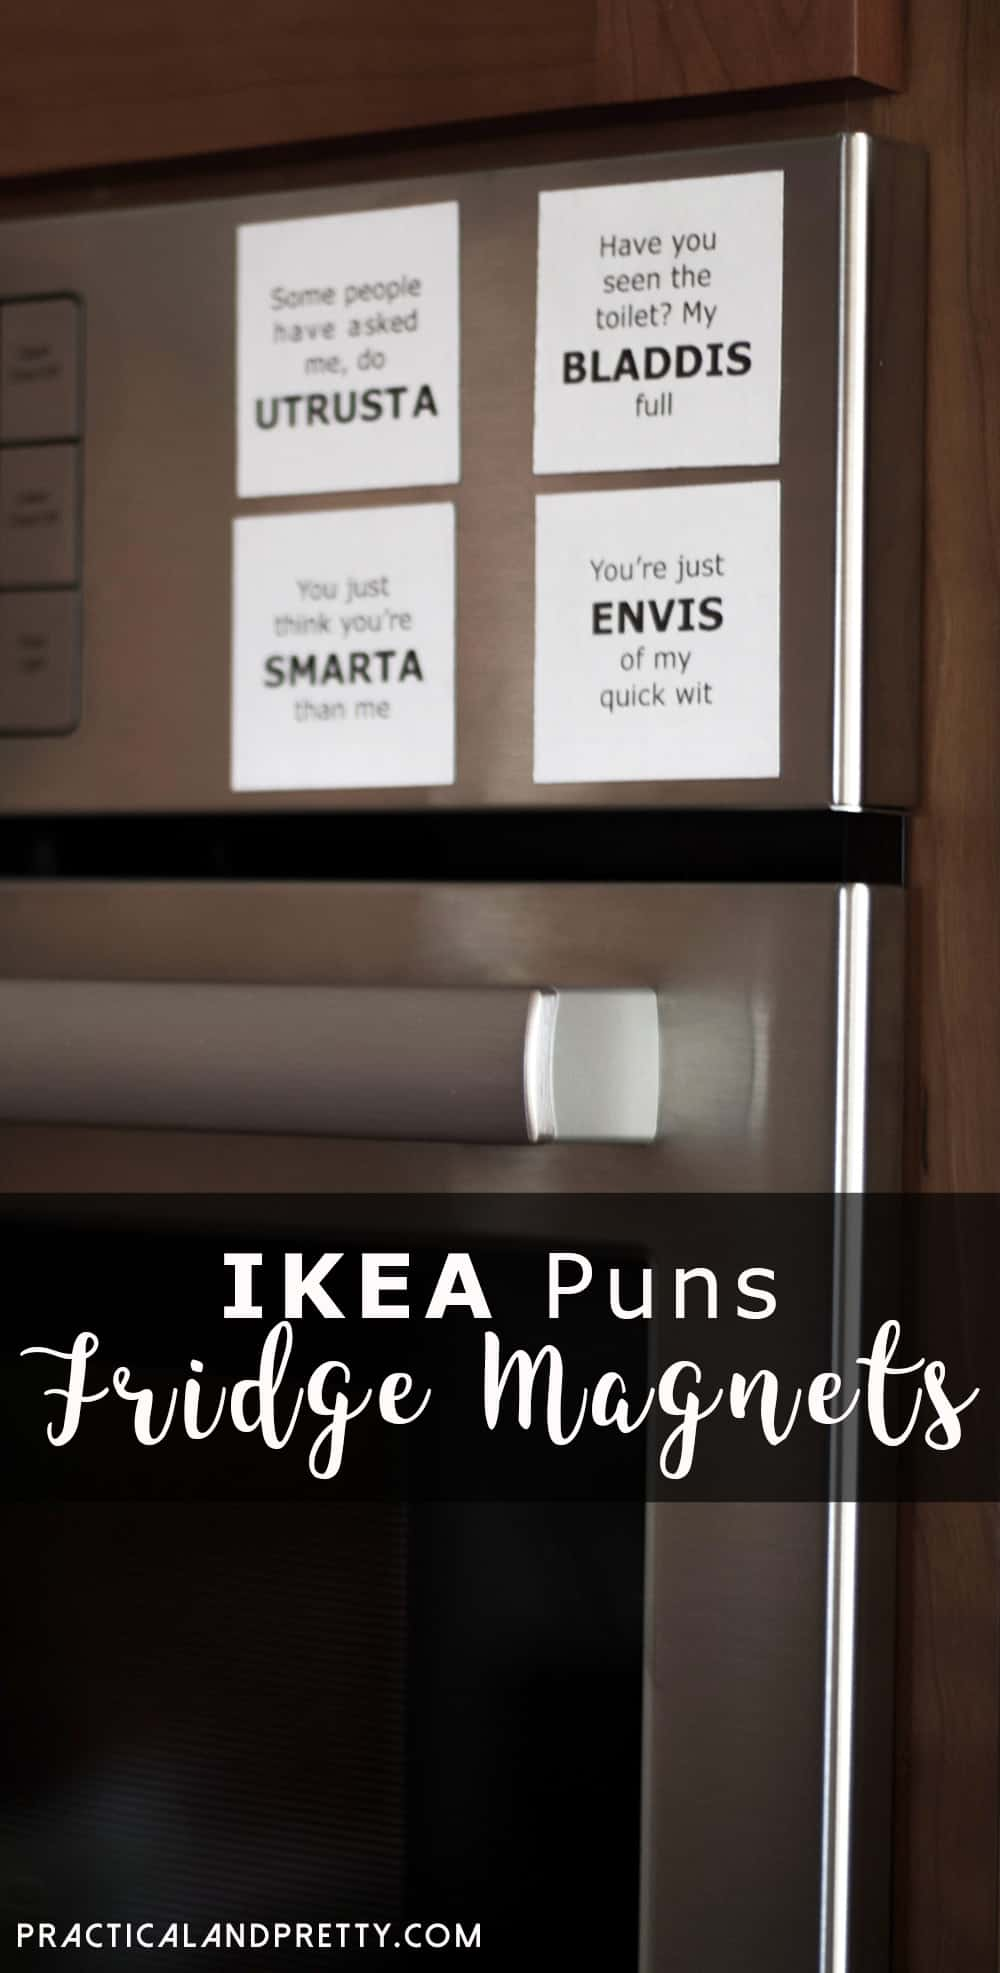 If you love IKEA you need these funny pun magnets in your kitchen or anywhere in your home!